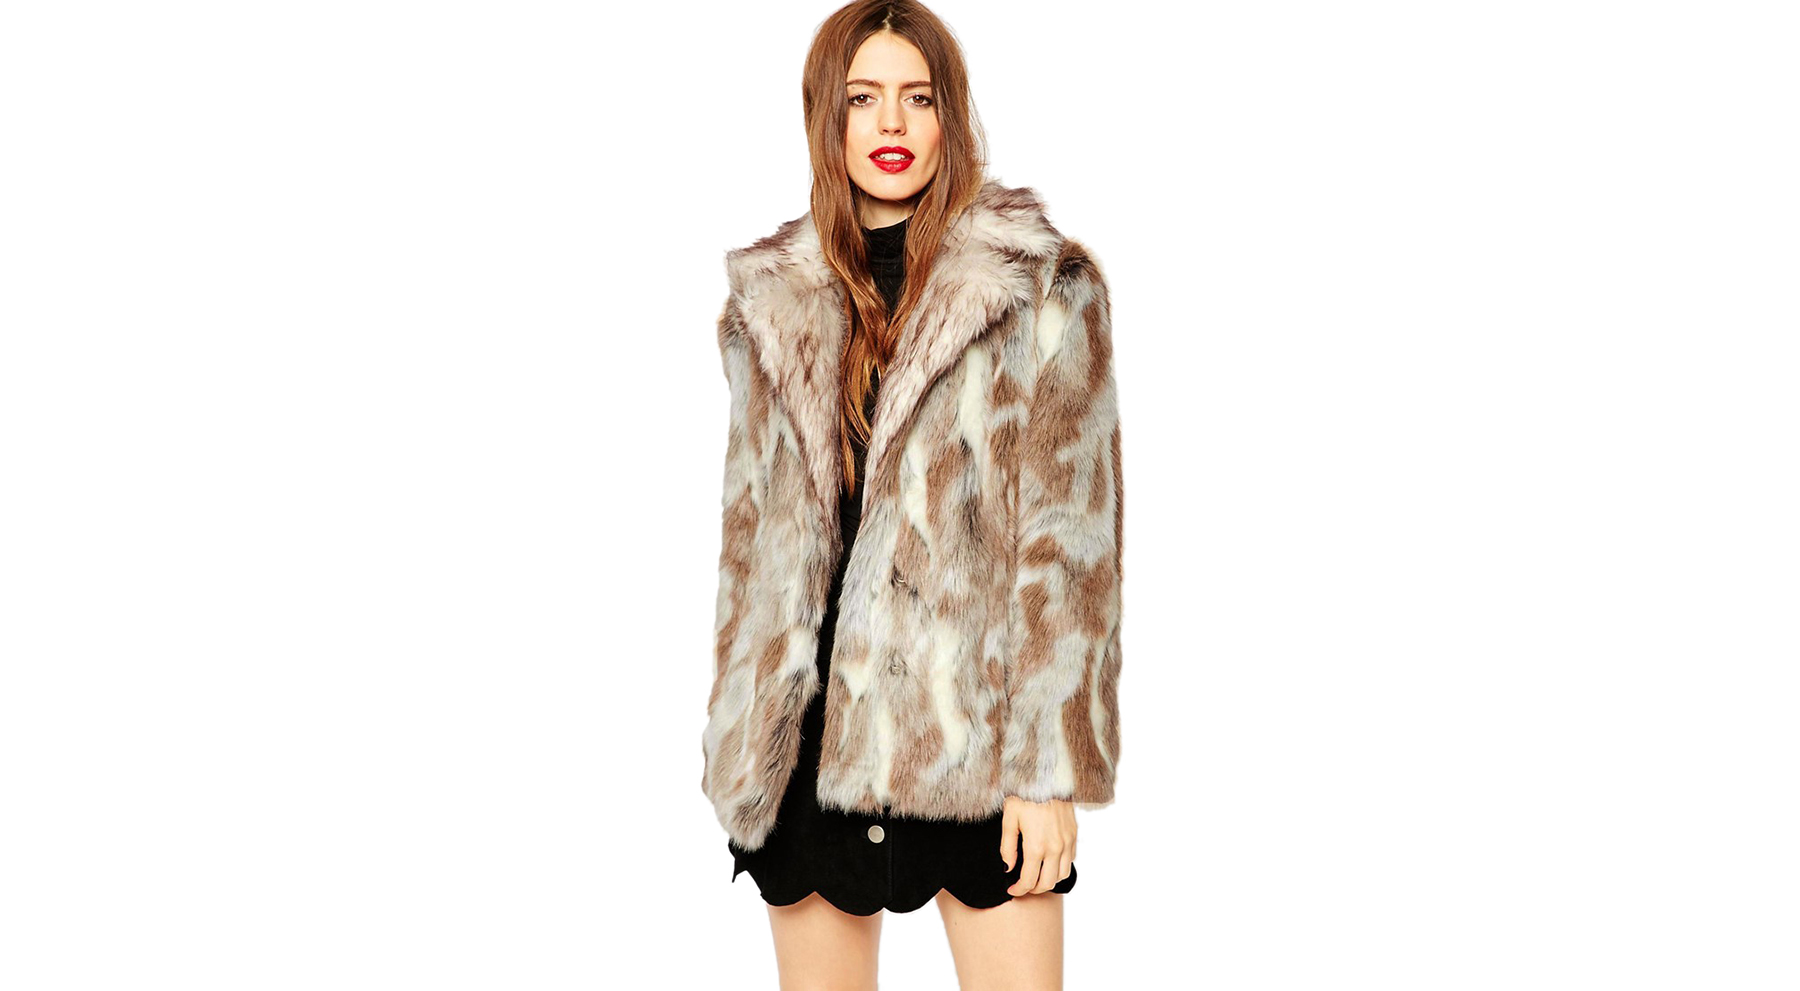 ASOS Coat in Faux Rabbit Fur with Contrast Collar